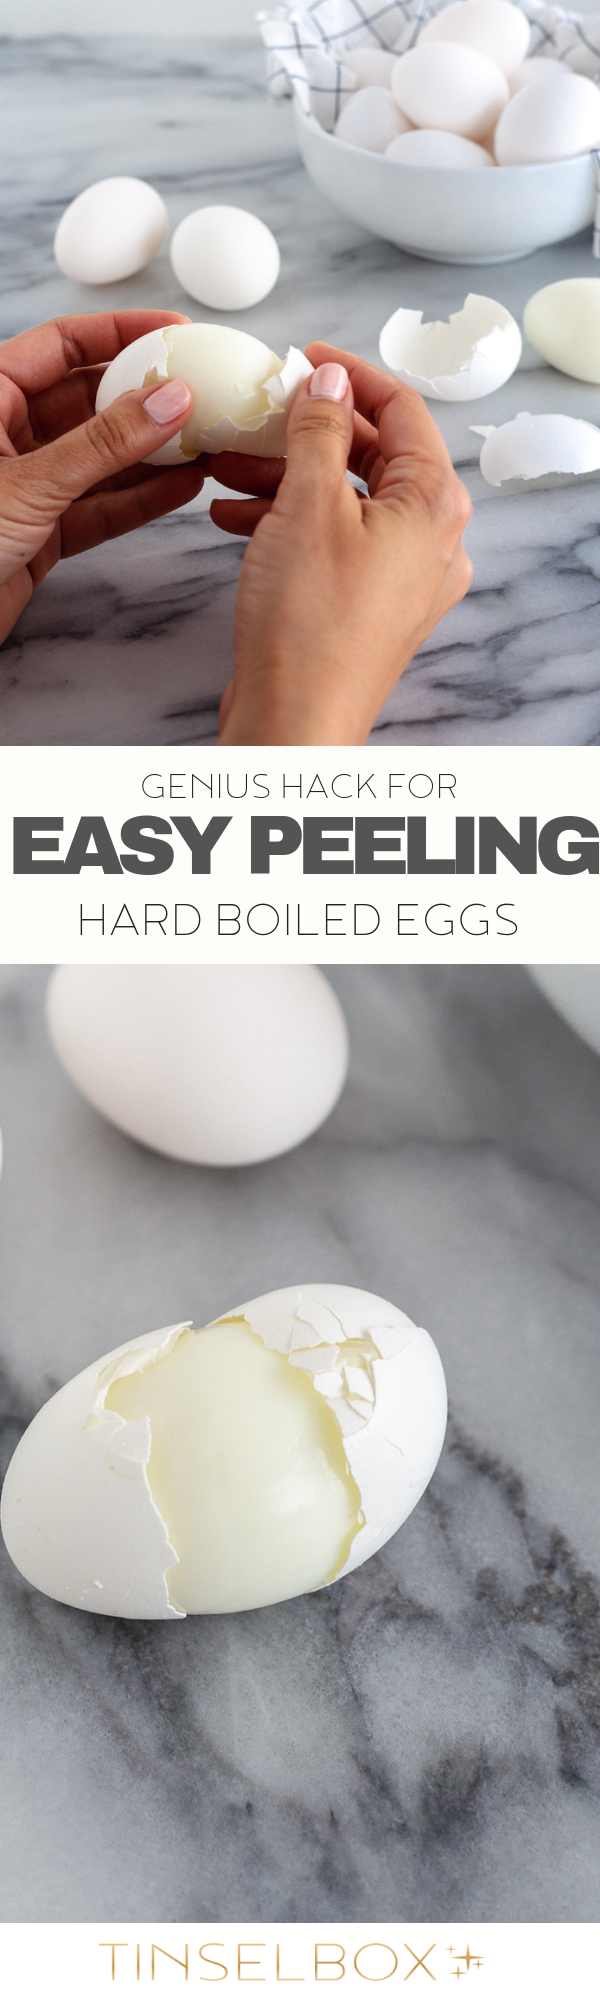 Genius Hack for Easy Peeling Hard Boiled